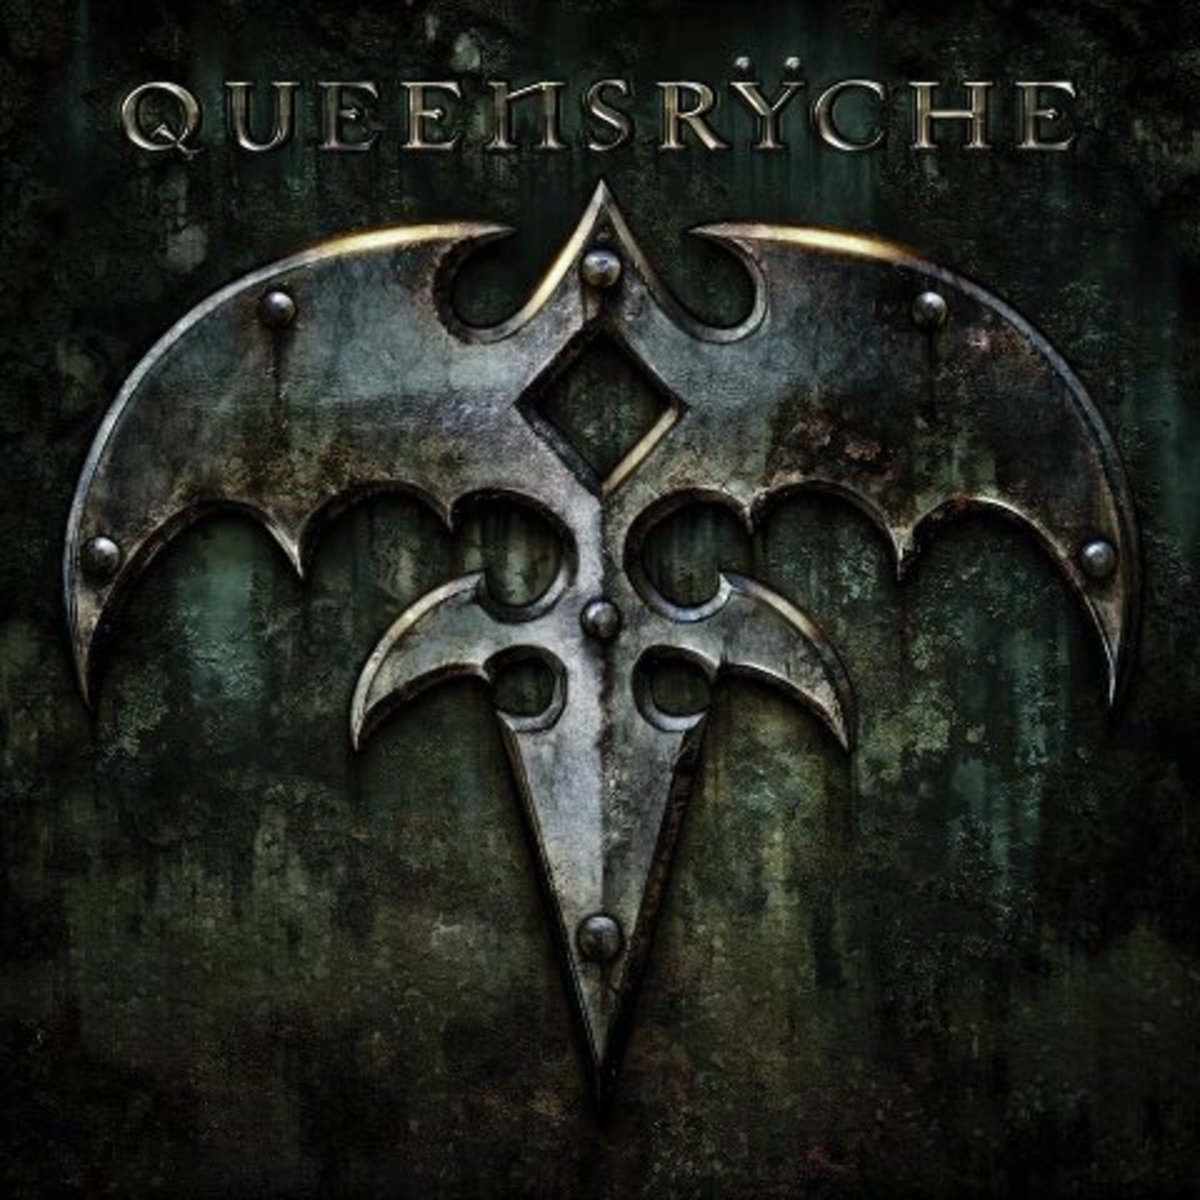 """Queensryche"" self titled album cover"